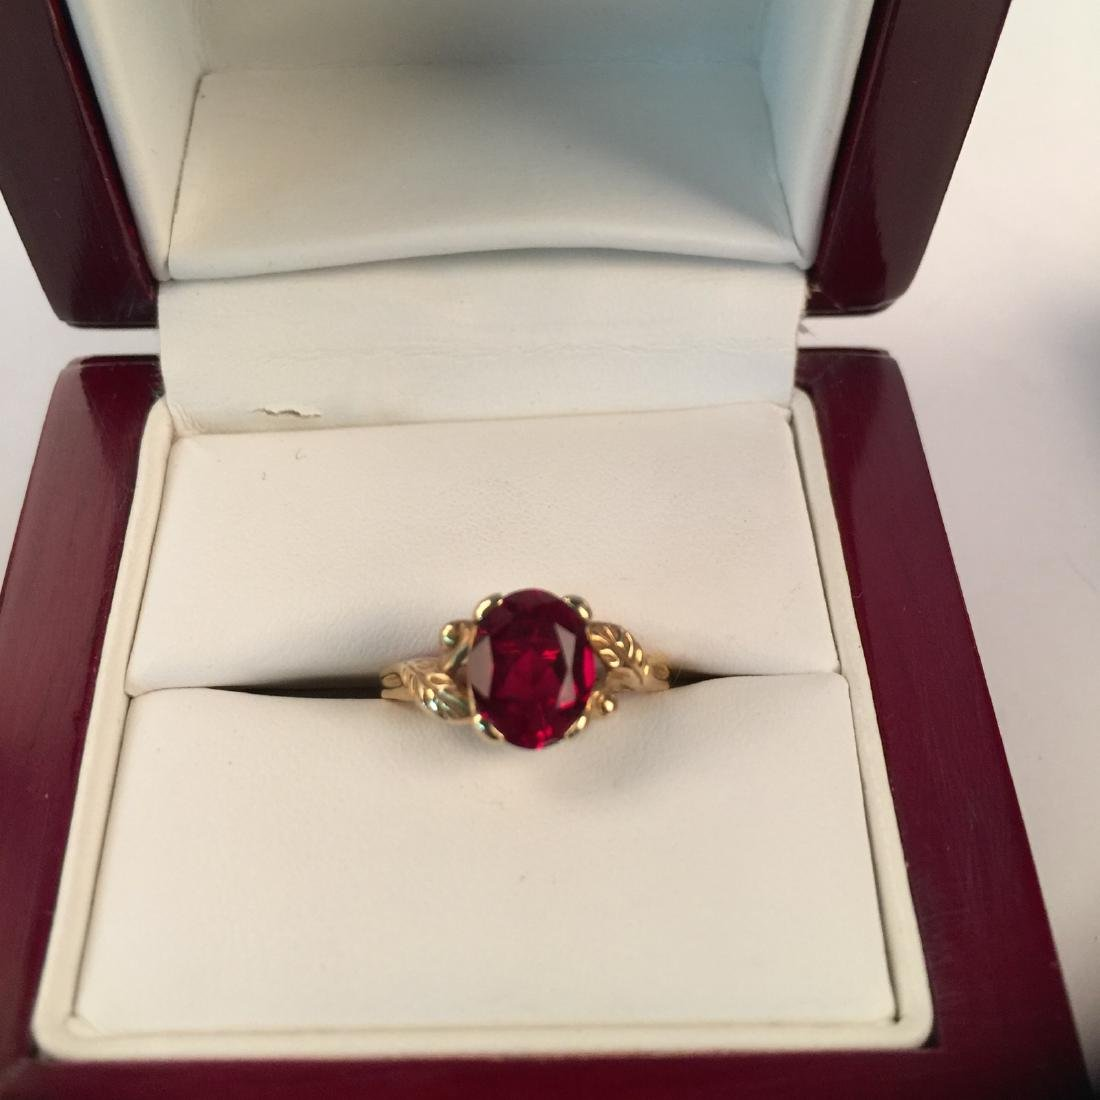 A 14k gold ruby ring